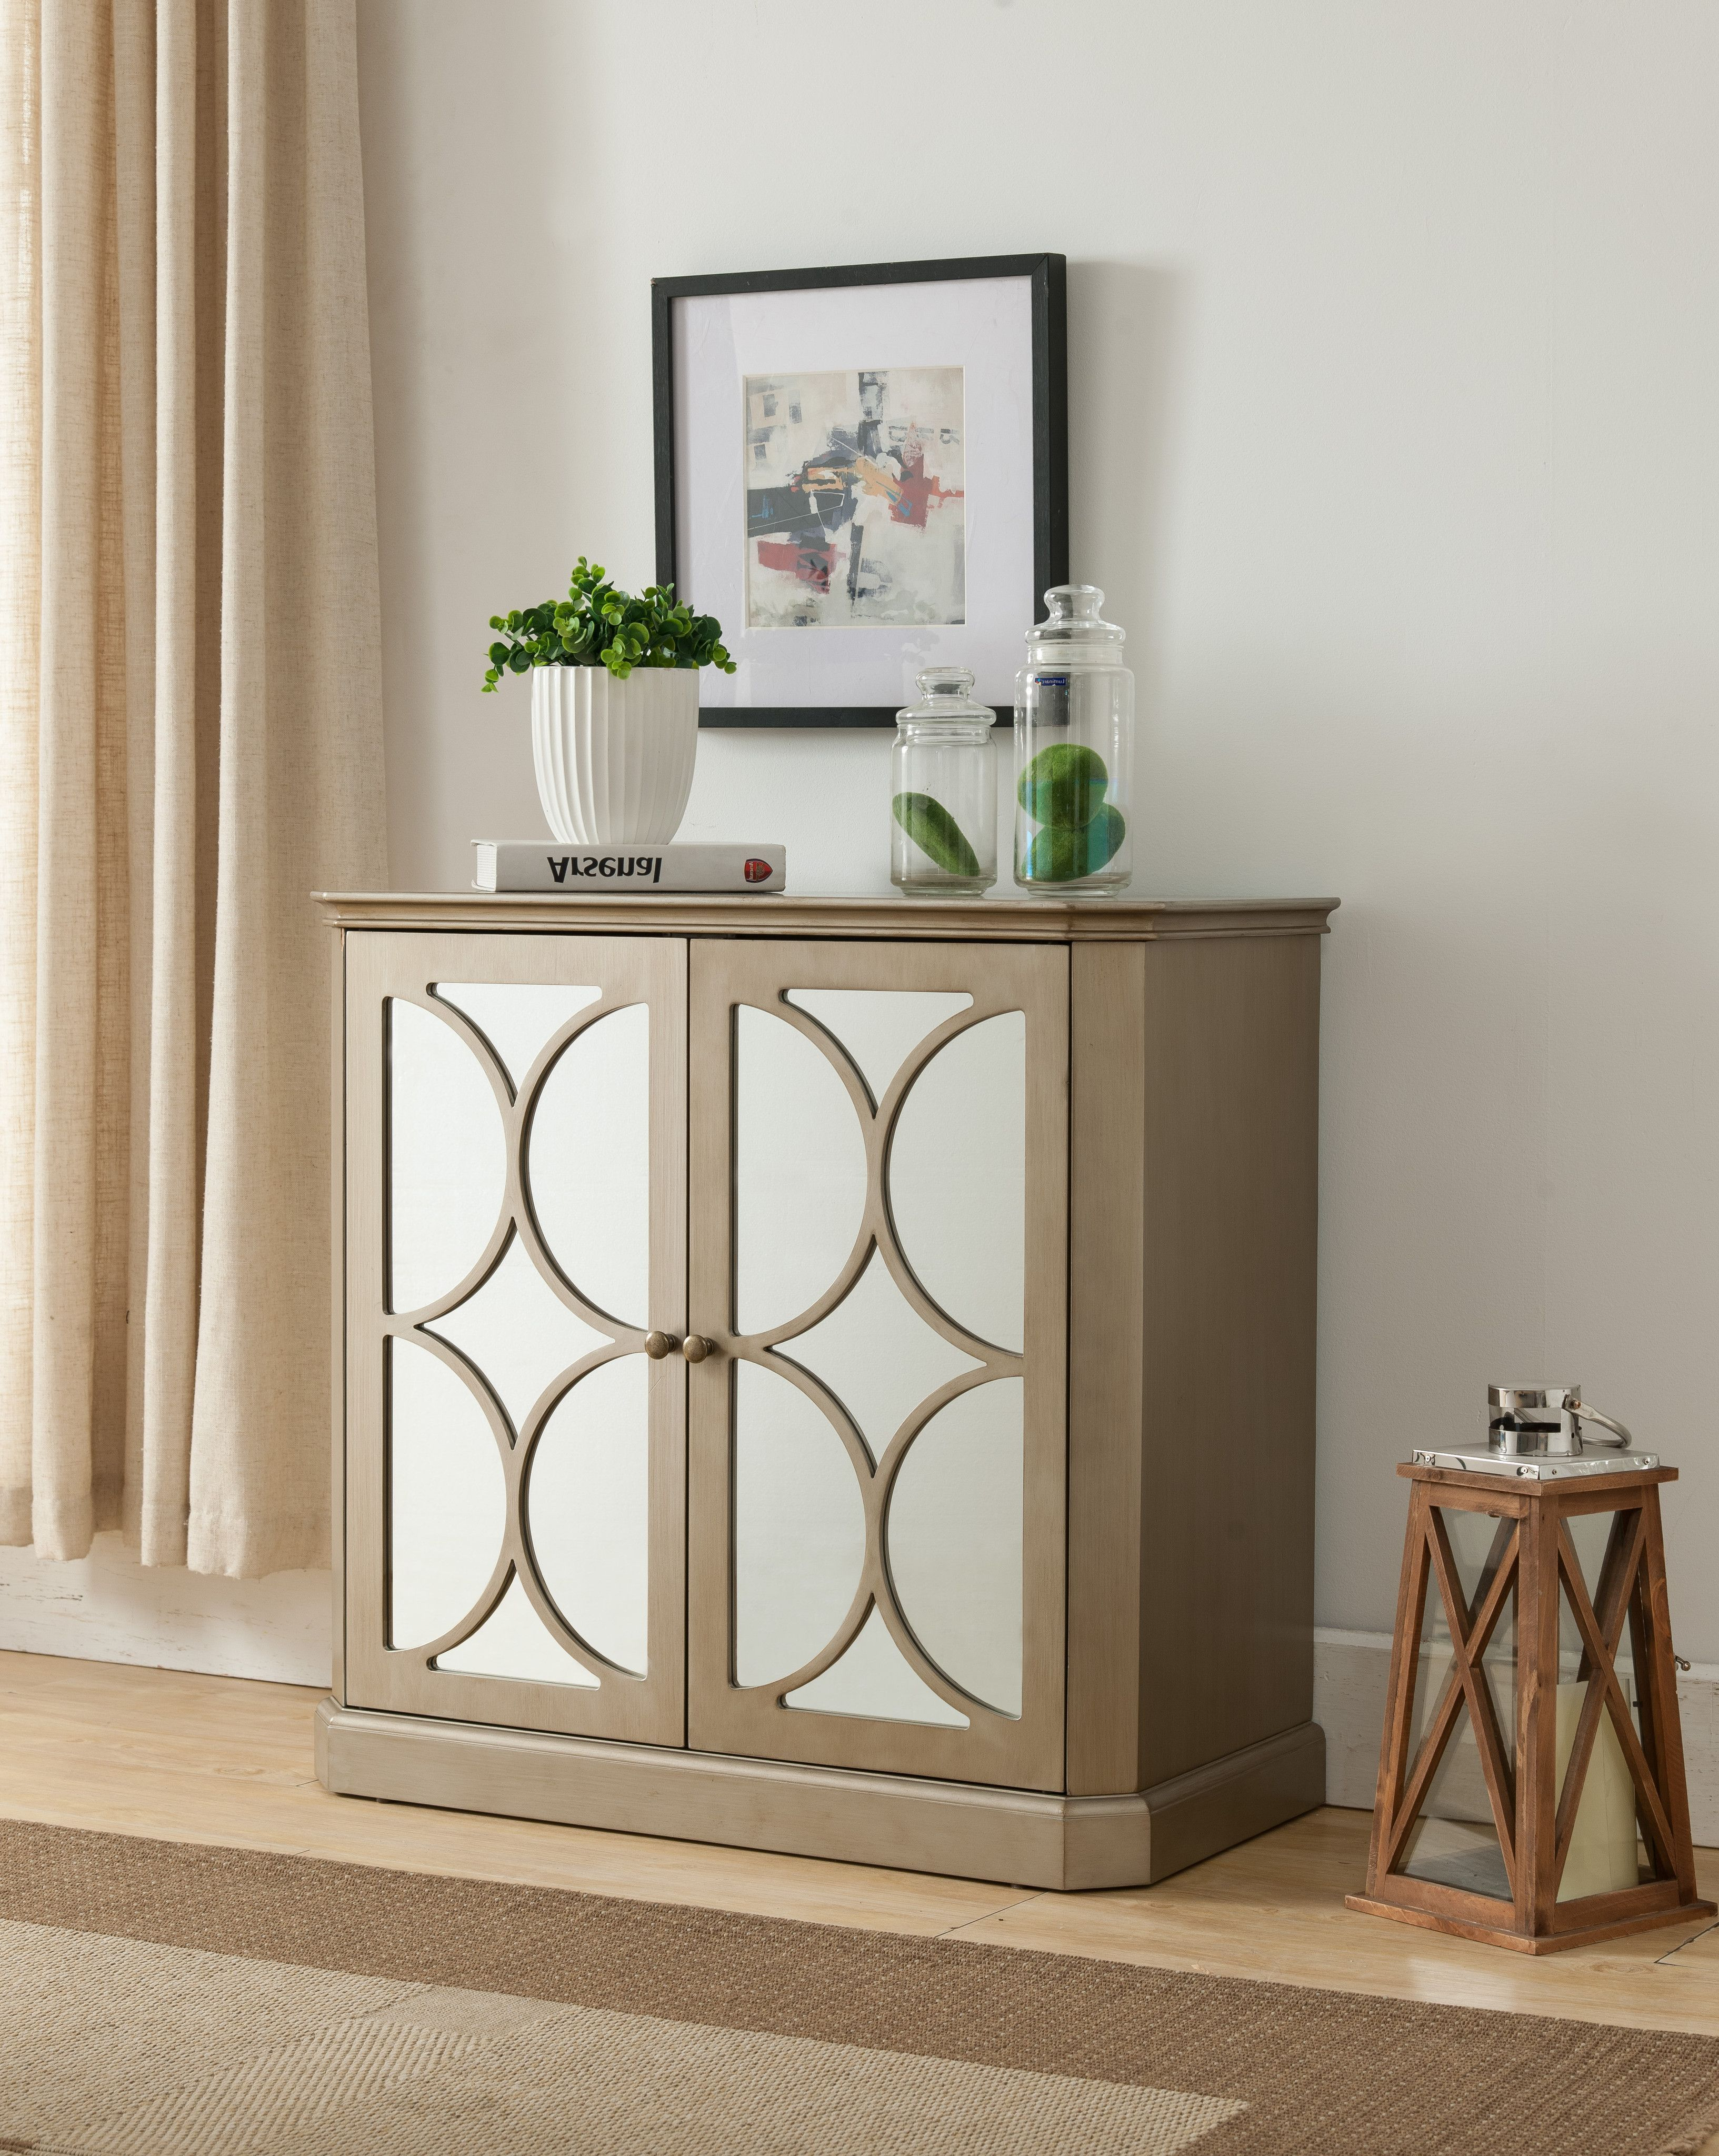 Gold Wood Contemporary Accent Entryway Sofa Display Table With Mirrored Storage Cabinet Doors